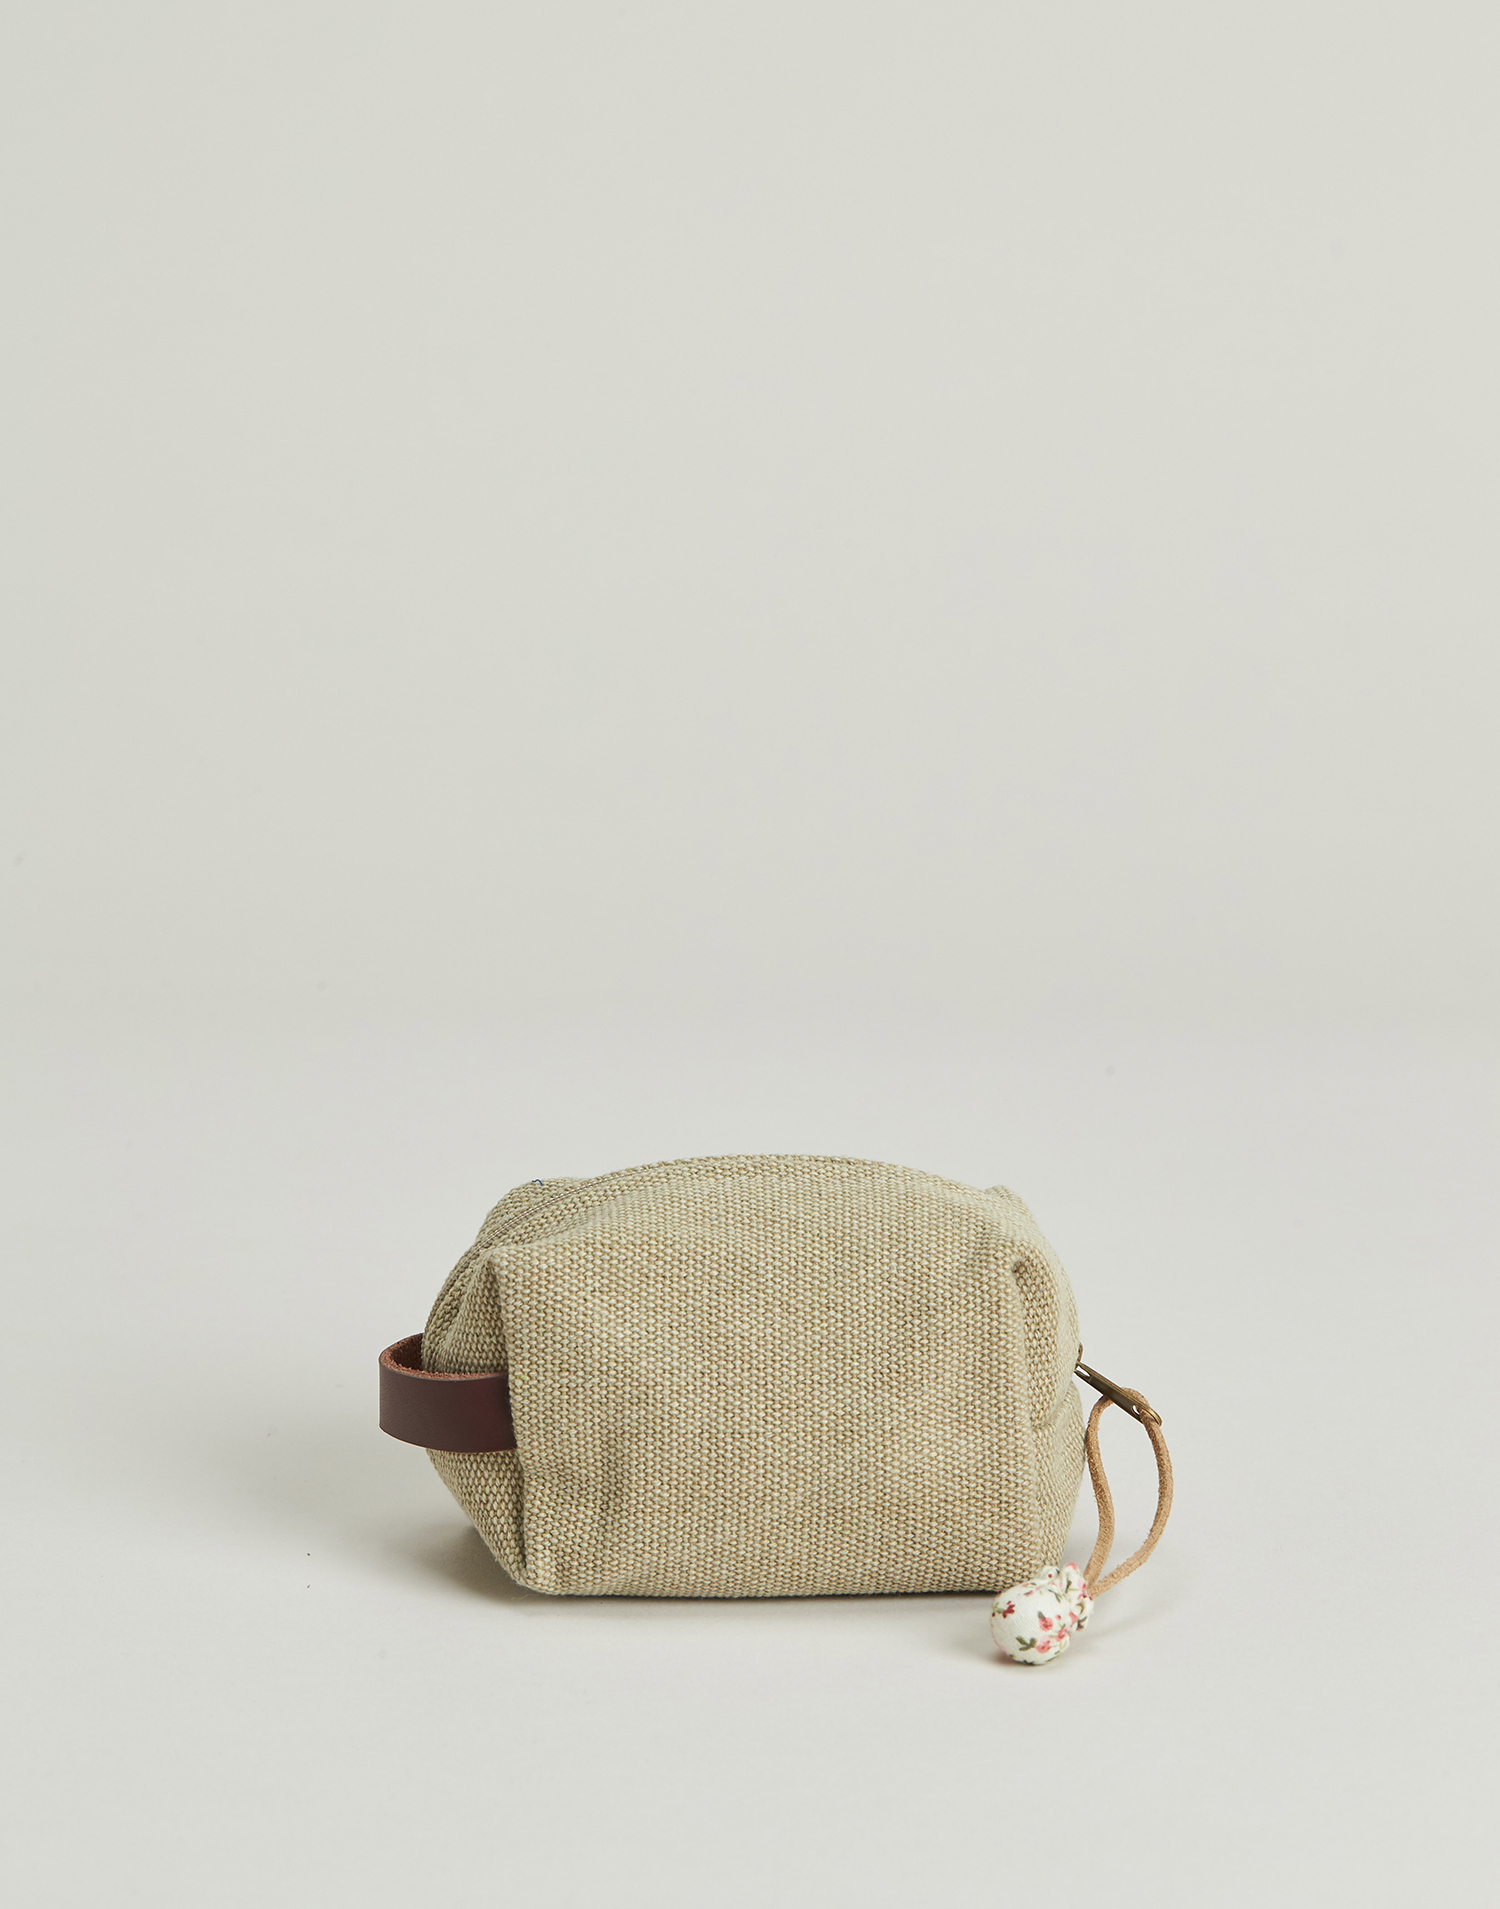 Coin purse with handle